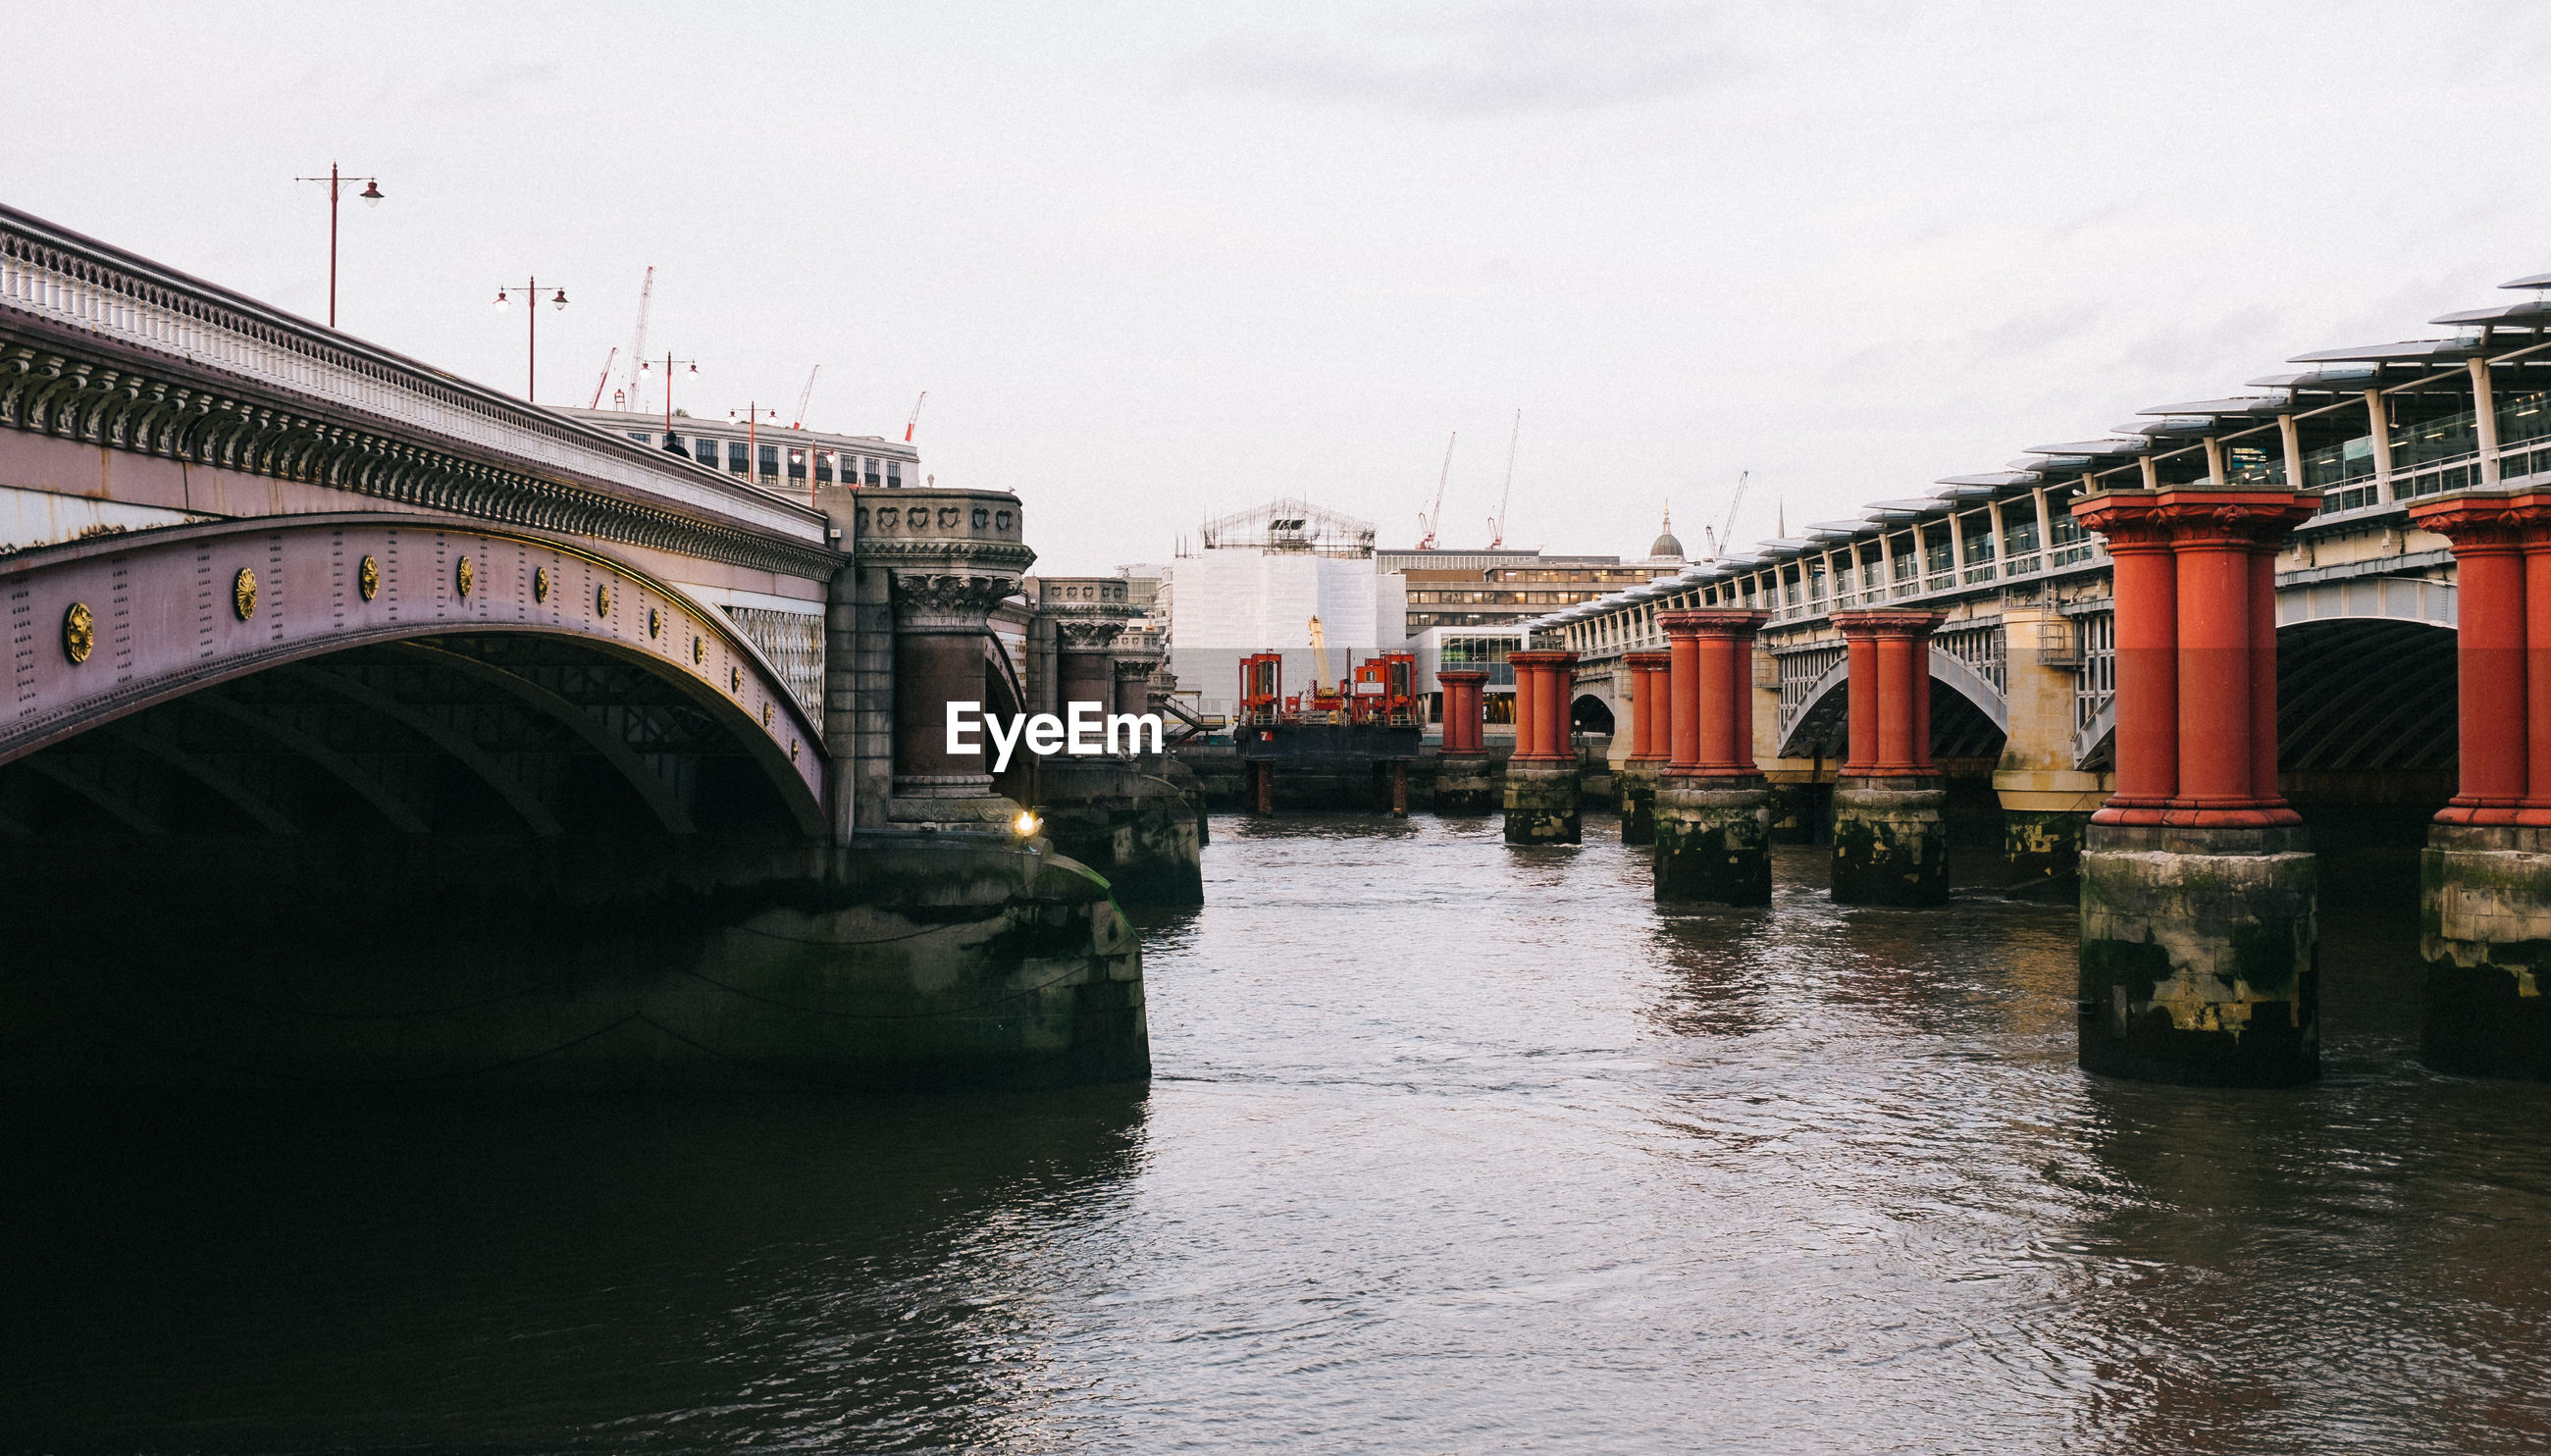 Arch bridges over river in city against sky